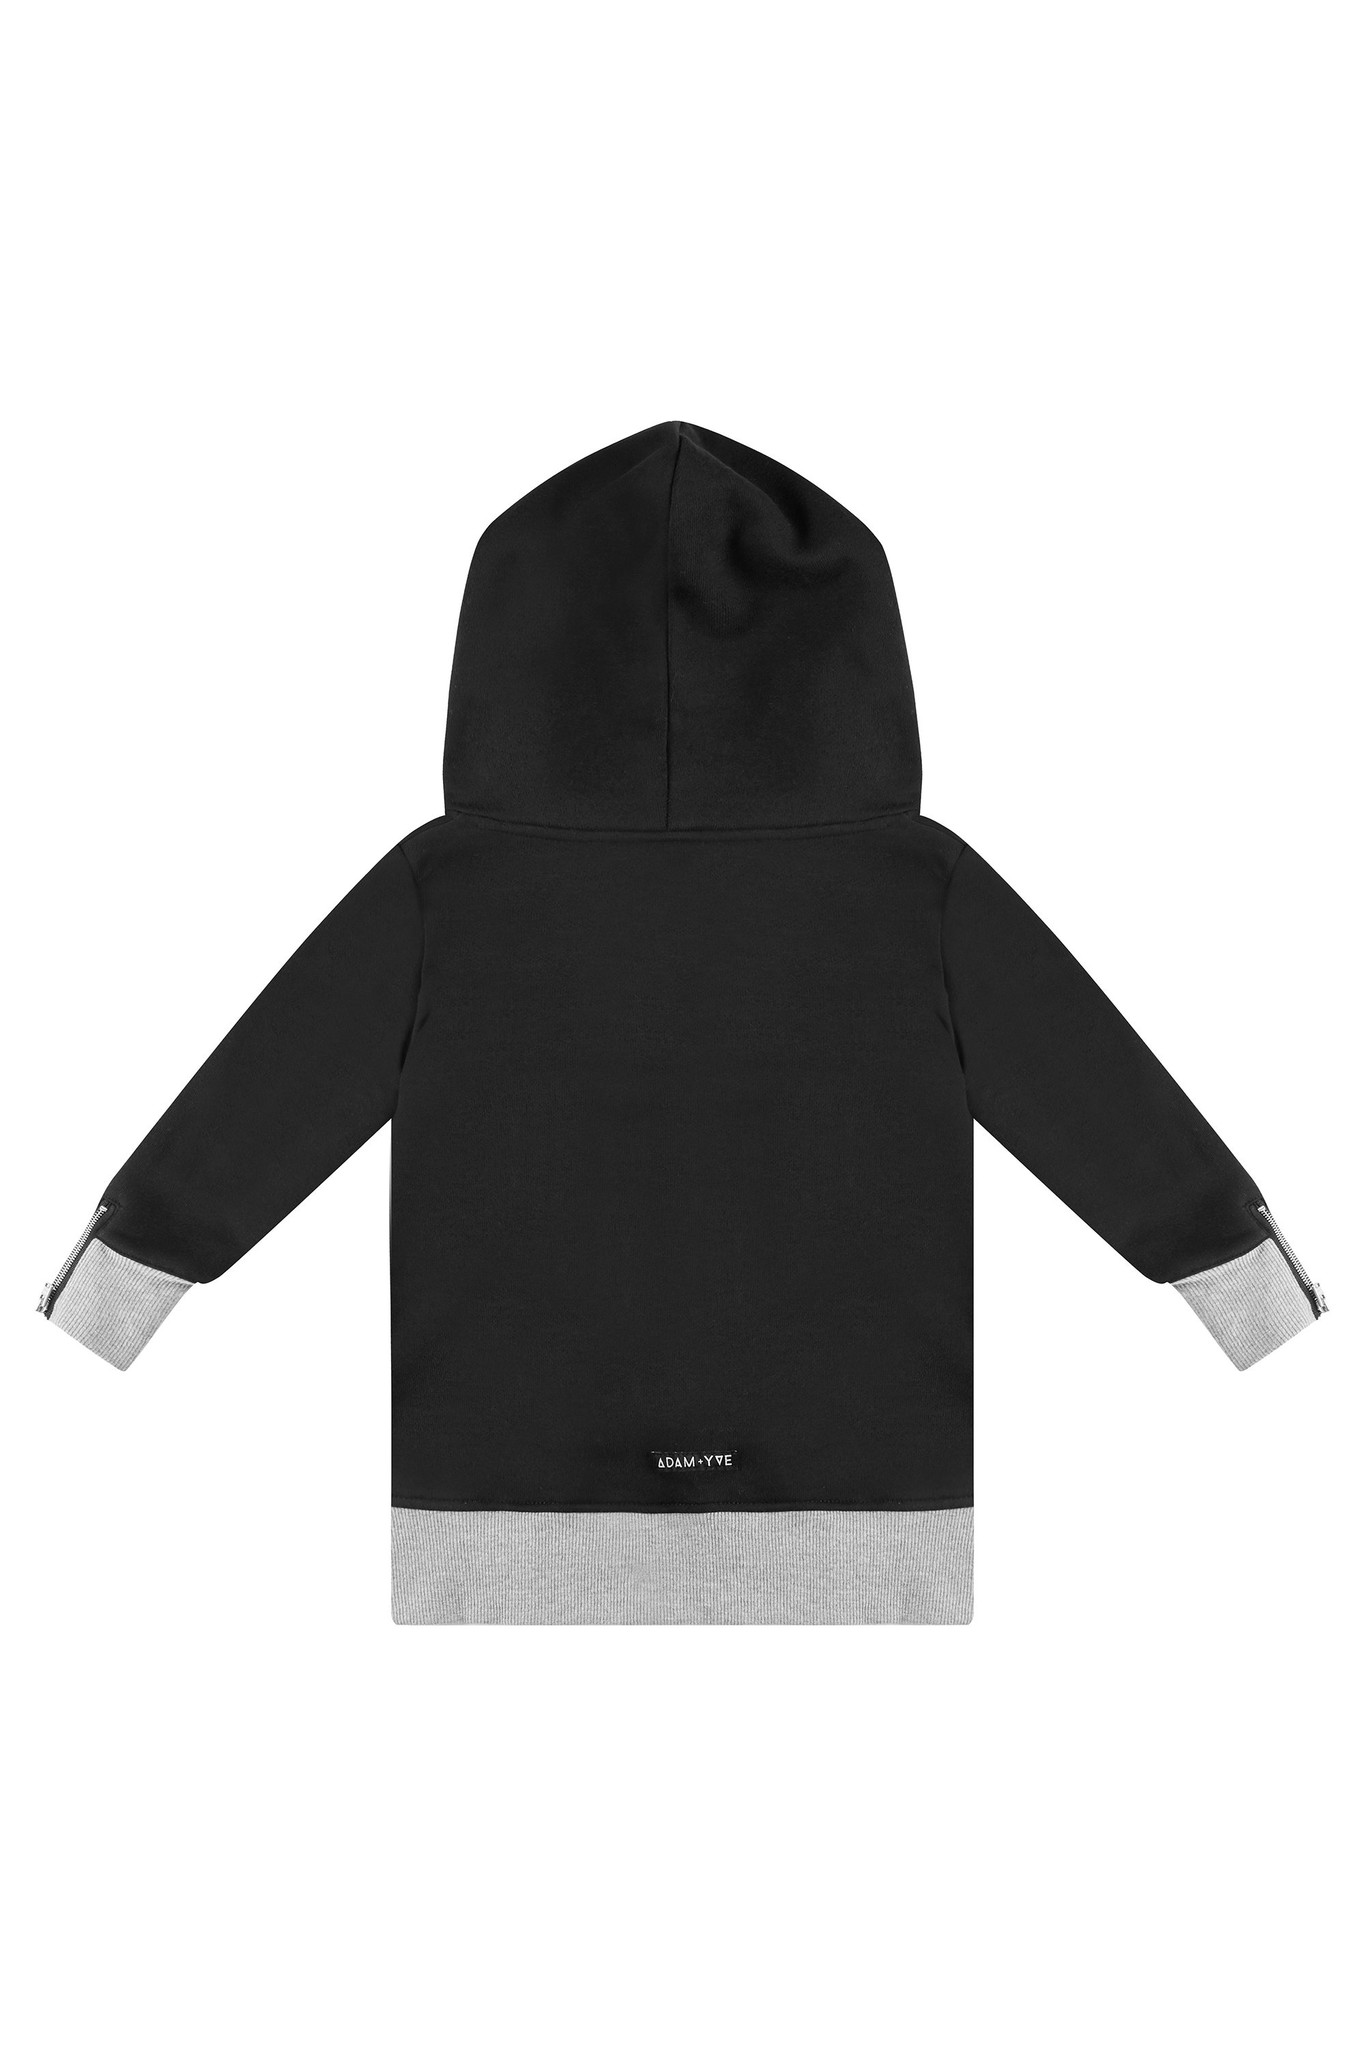 Adam + Yve BLACK HOODIE FOR BOYS | COOL LONG HOODIE | STREETWEAR BOYS CLOTHING